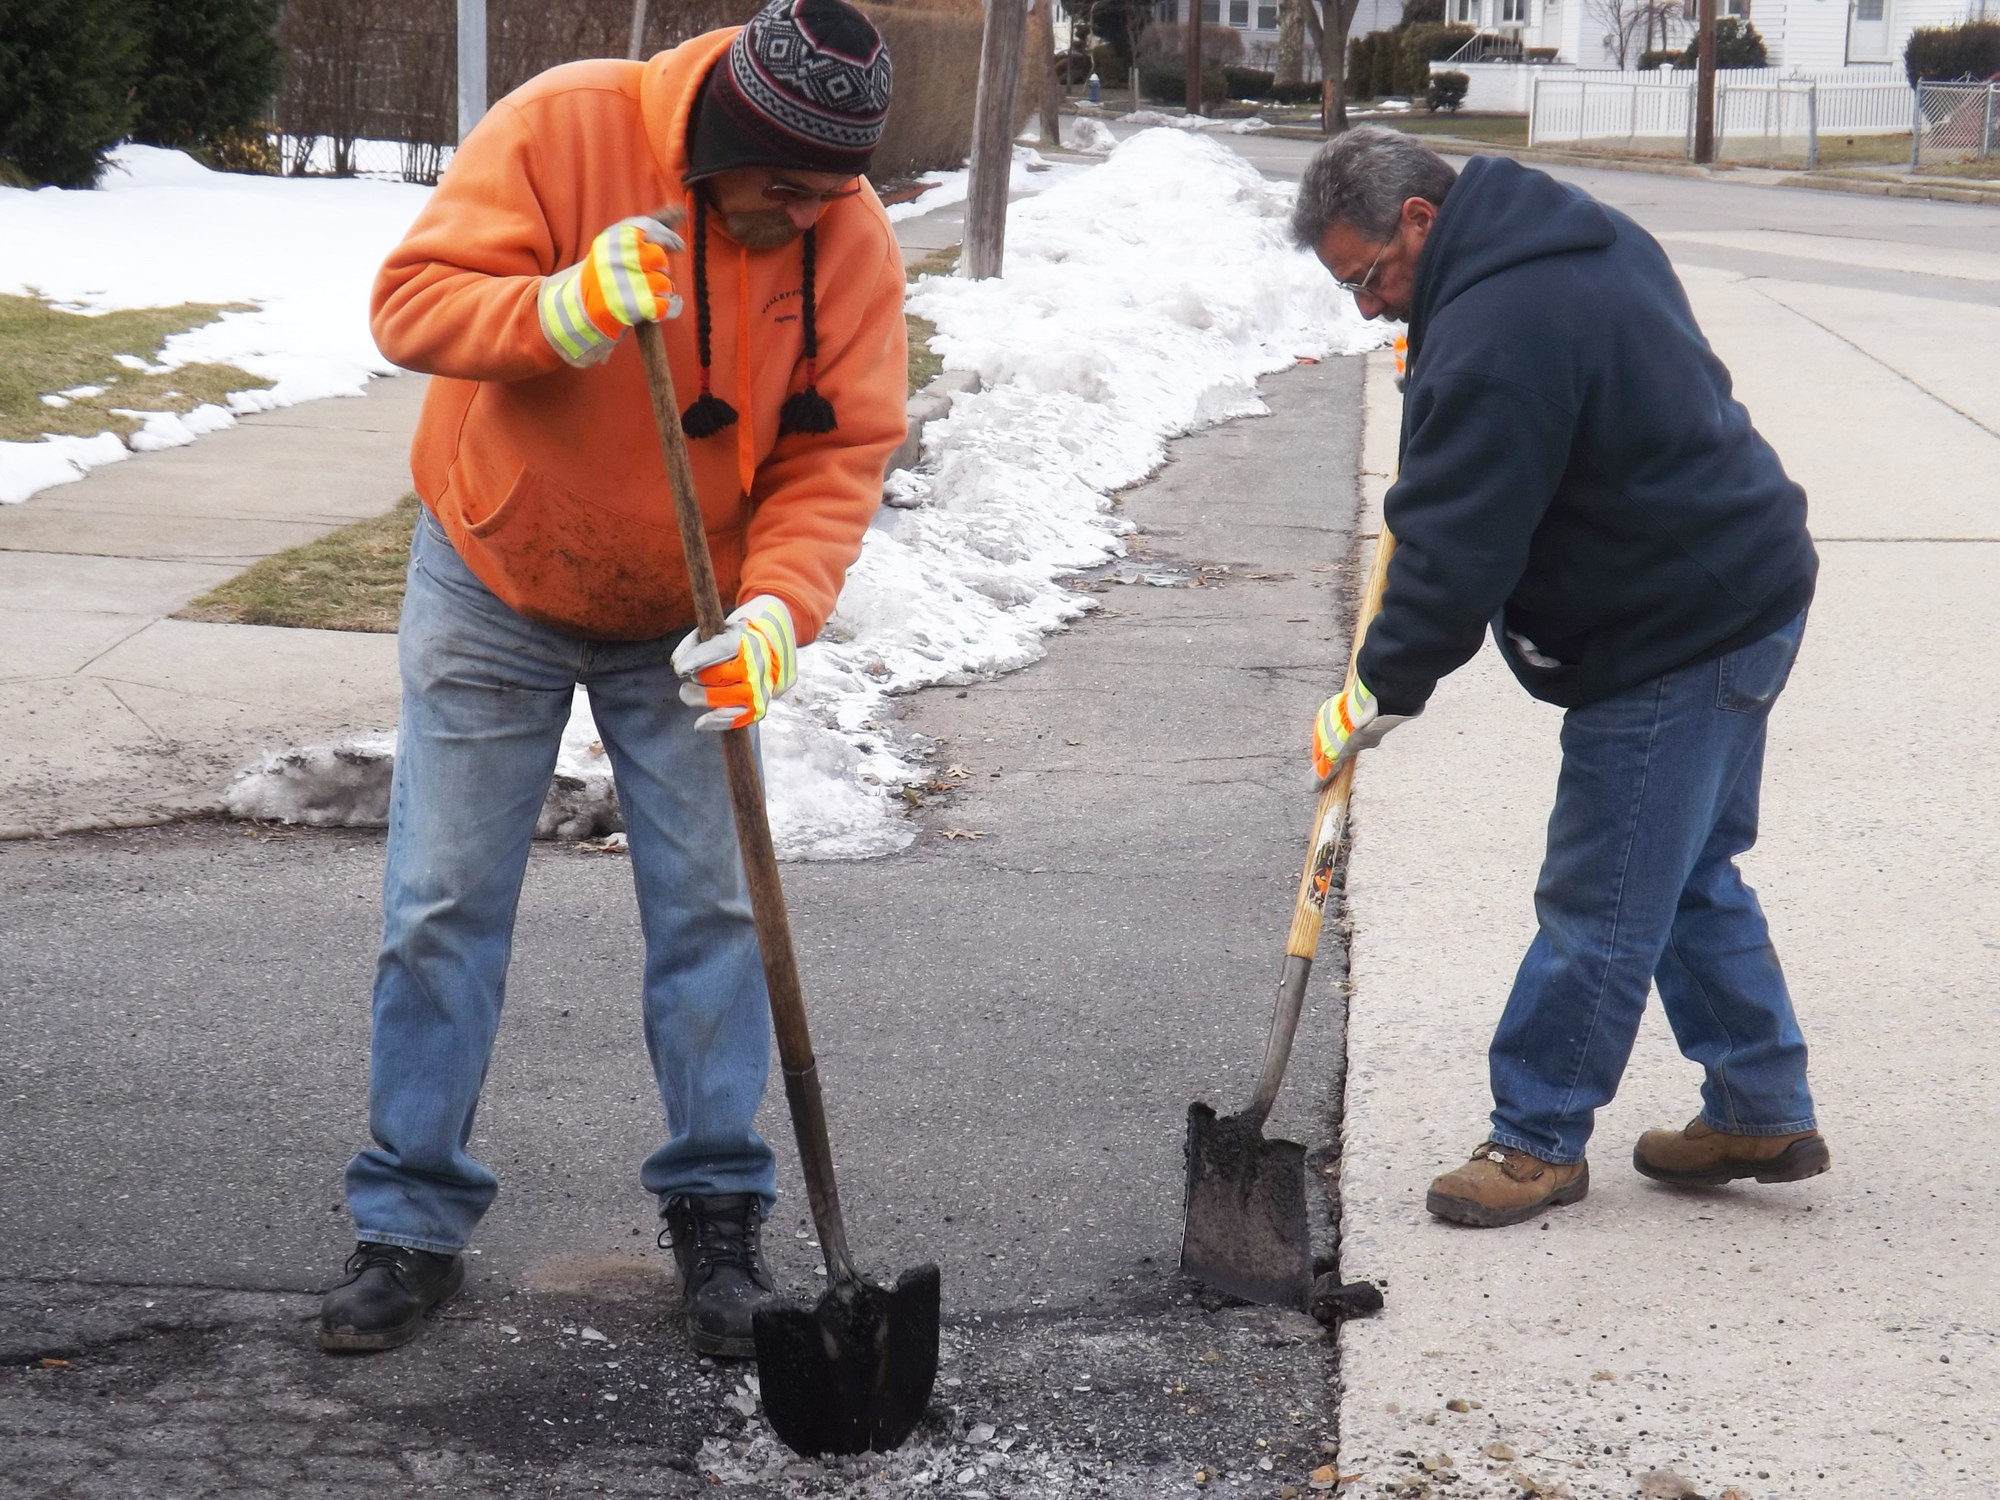 Filling in potholes is currently the No. 1 task for the Valley Stream Highway Department, according to its supervisor Tim Leahy. John Gabrielson, left, and Frank Lopez filled in potholes near the Gibson Long Island Rail Road station last week.